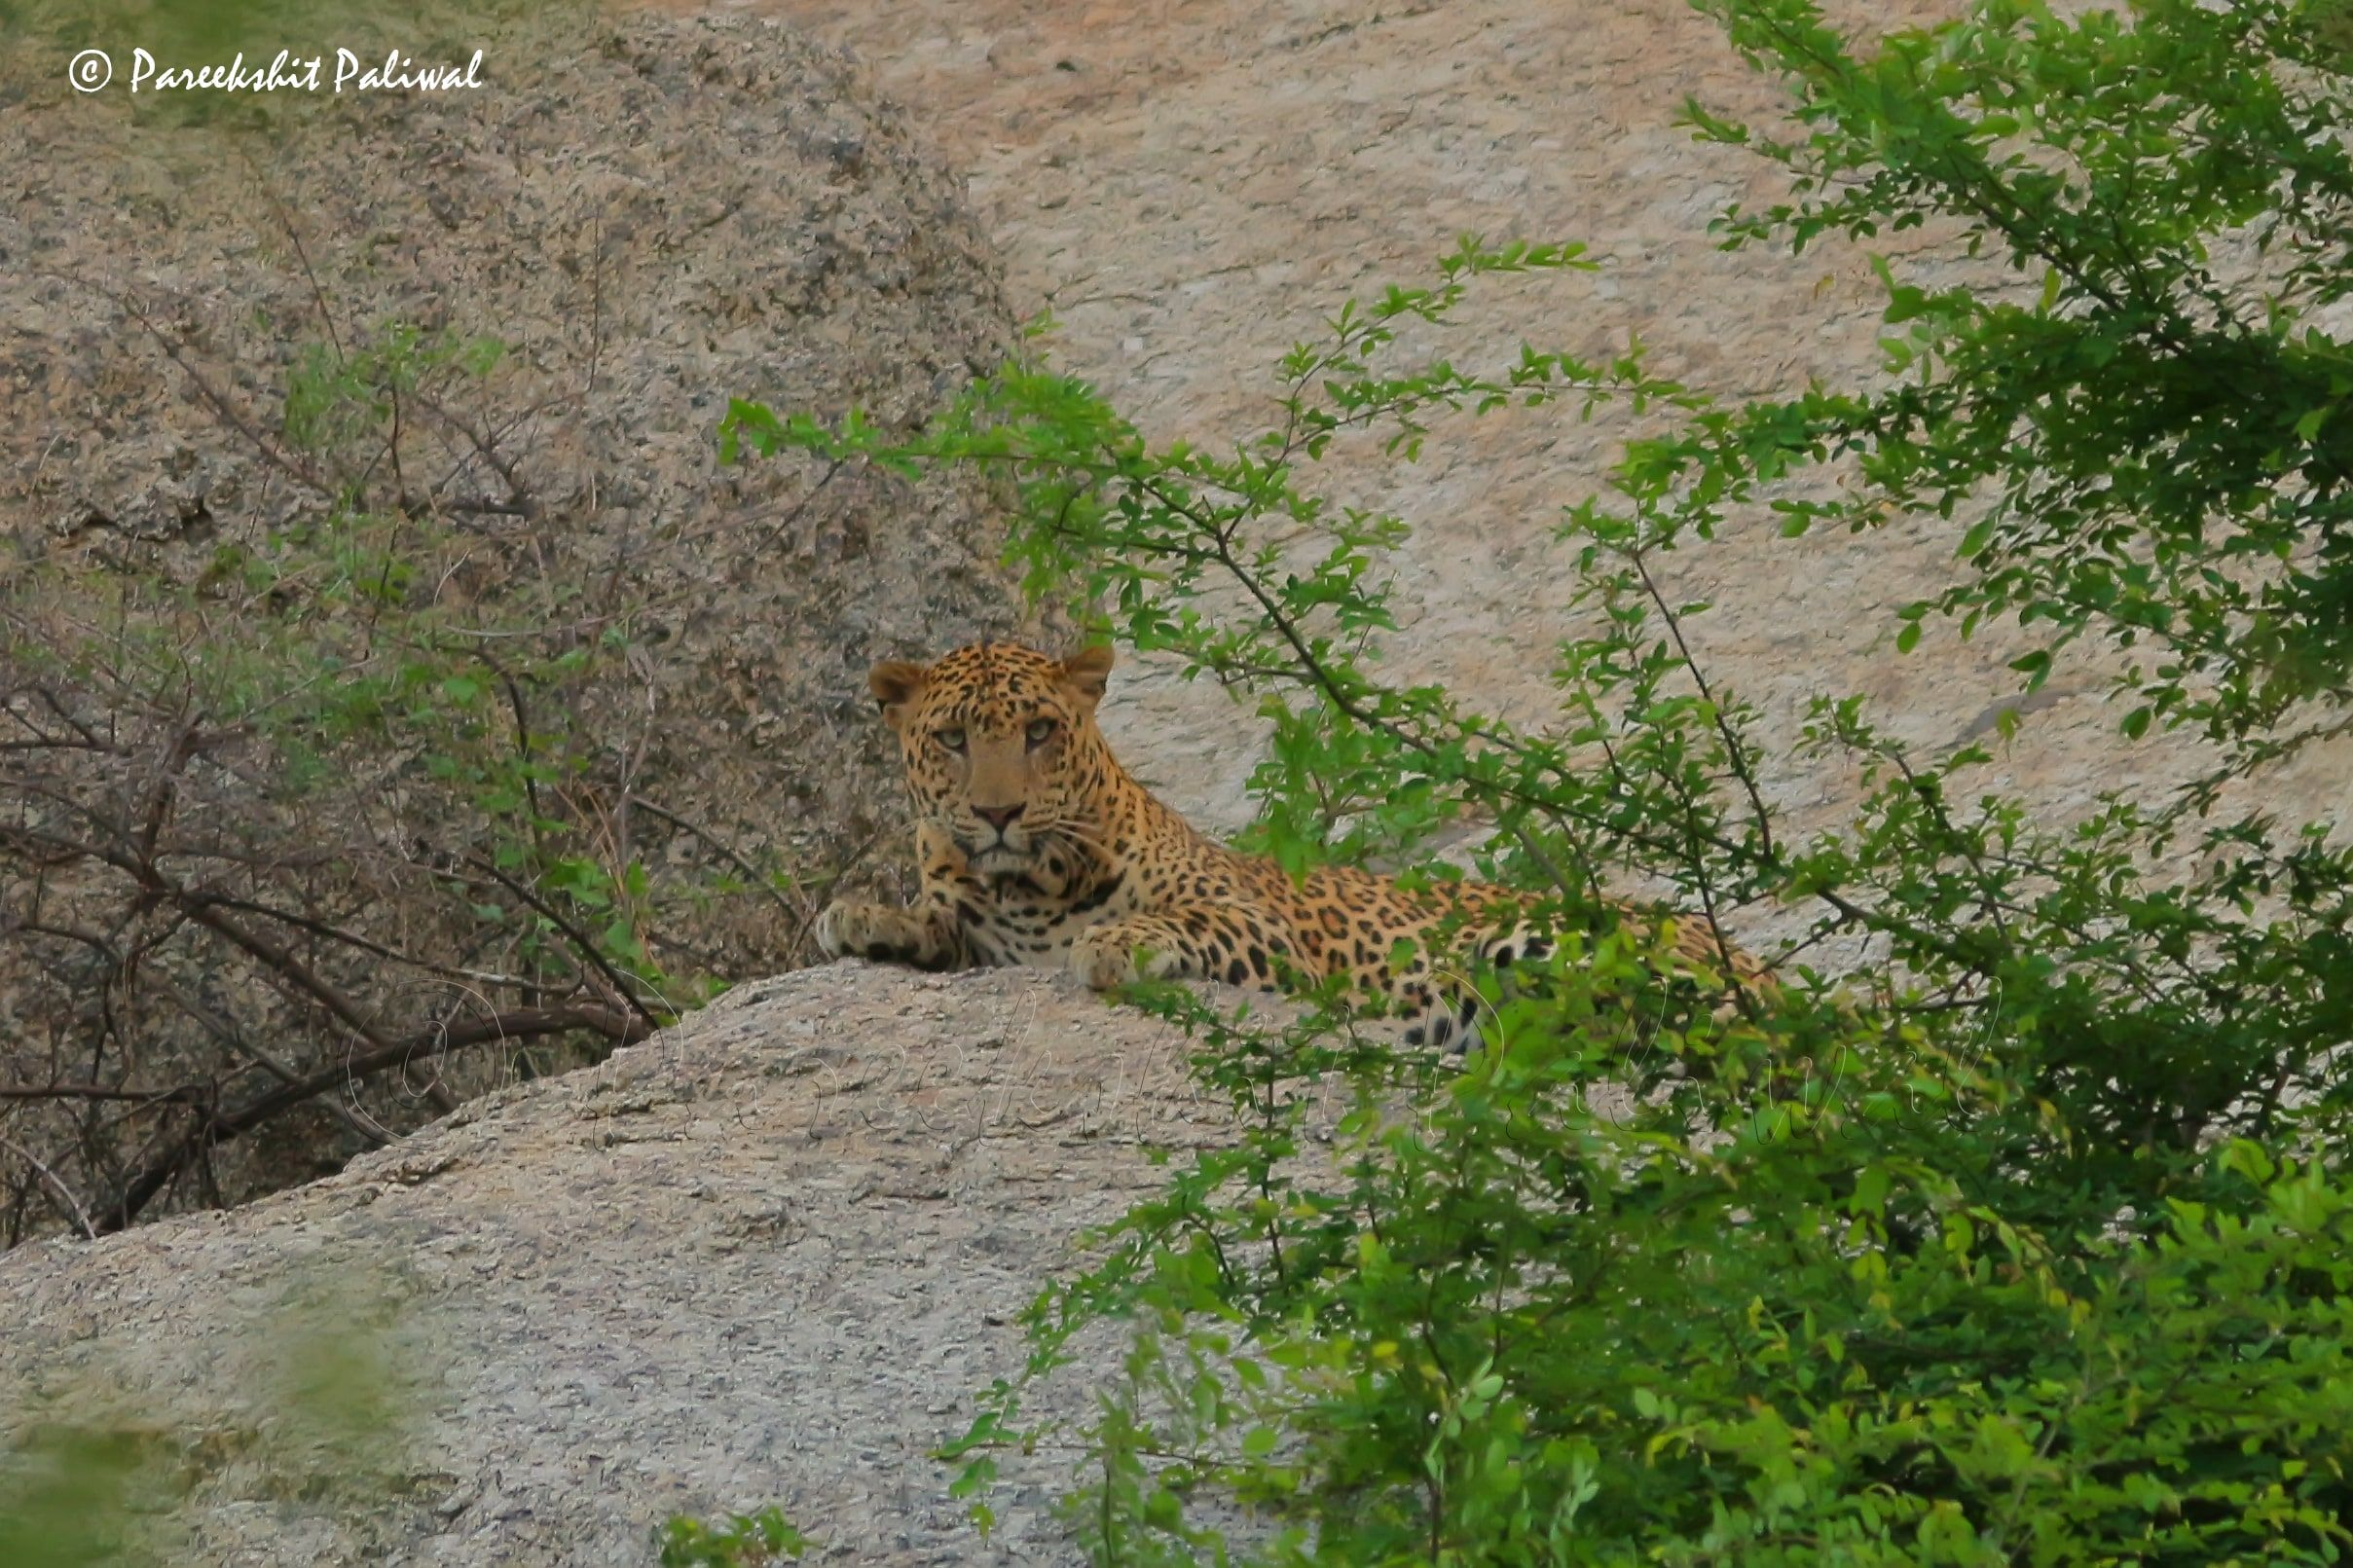 Jawai is an untouched land where you can capture the